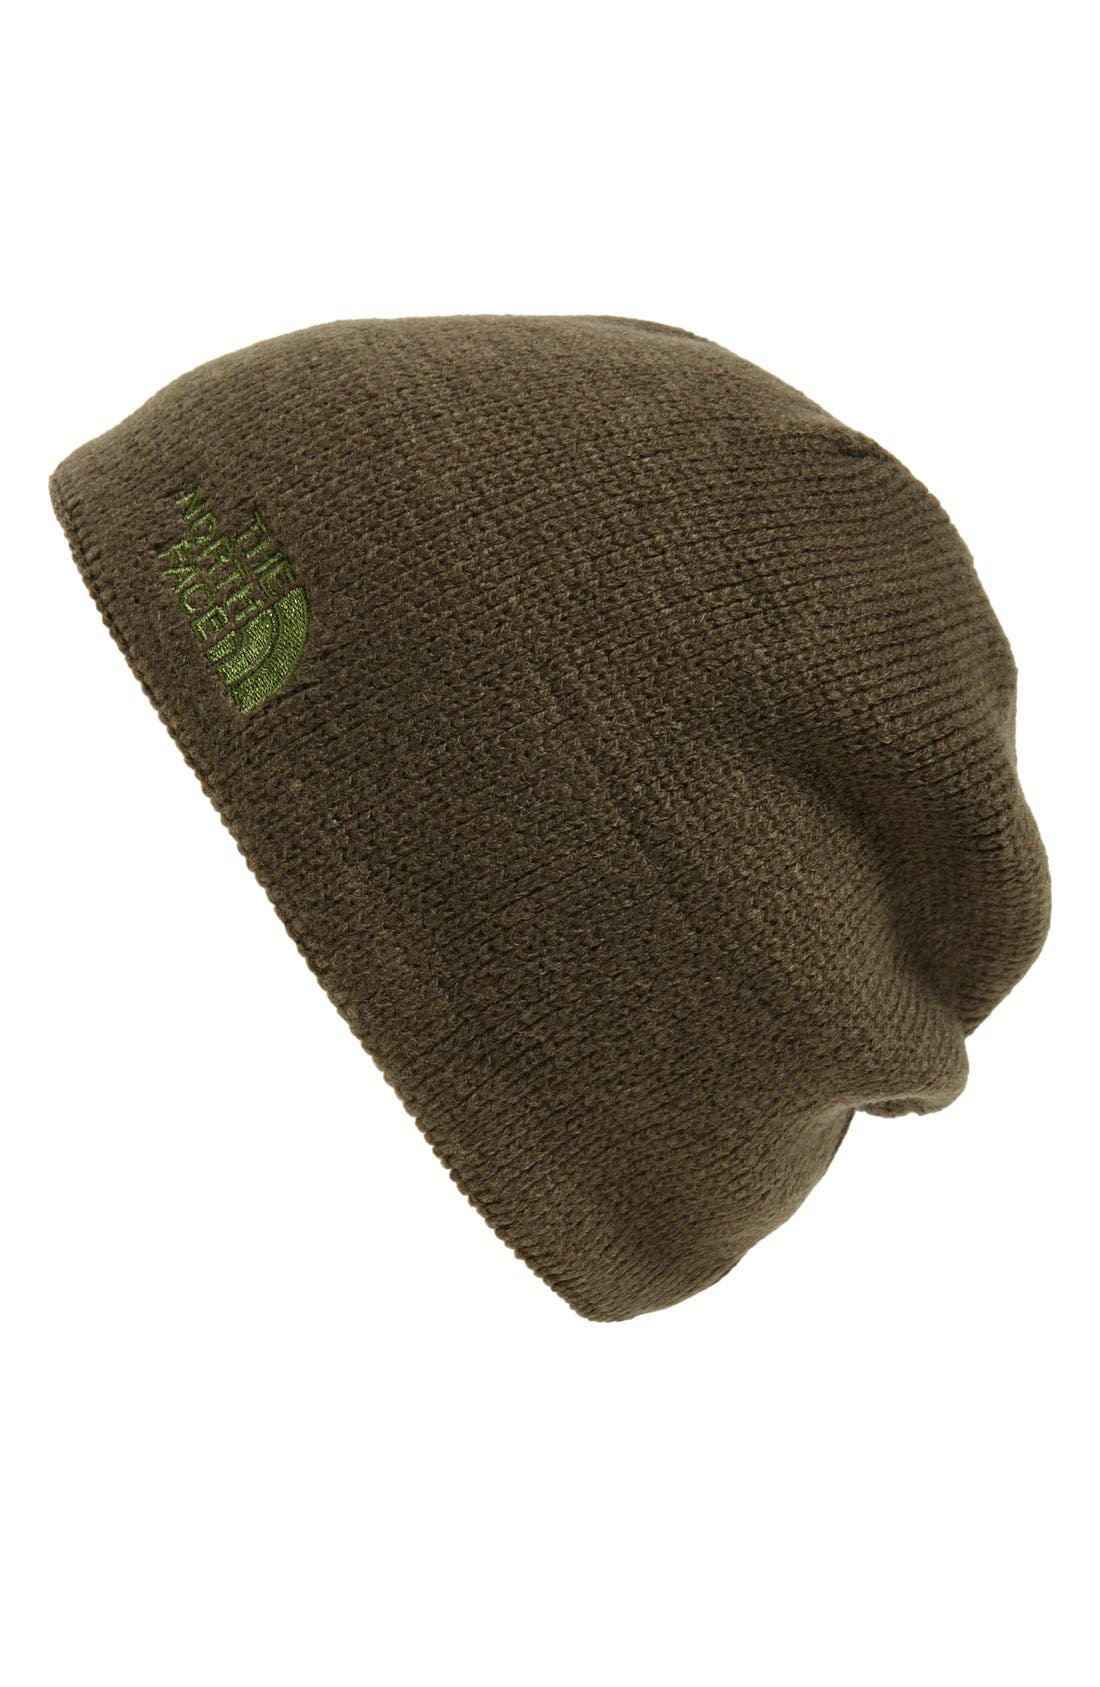 'Bones' Microfleece Beanie,                             Main thumbnail 6, color,